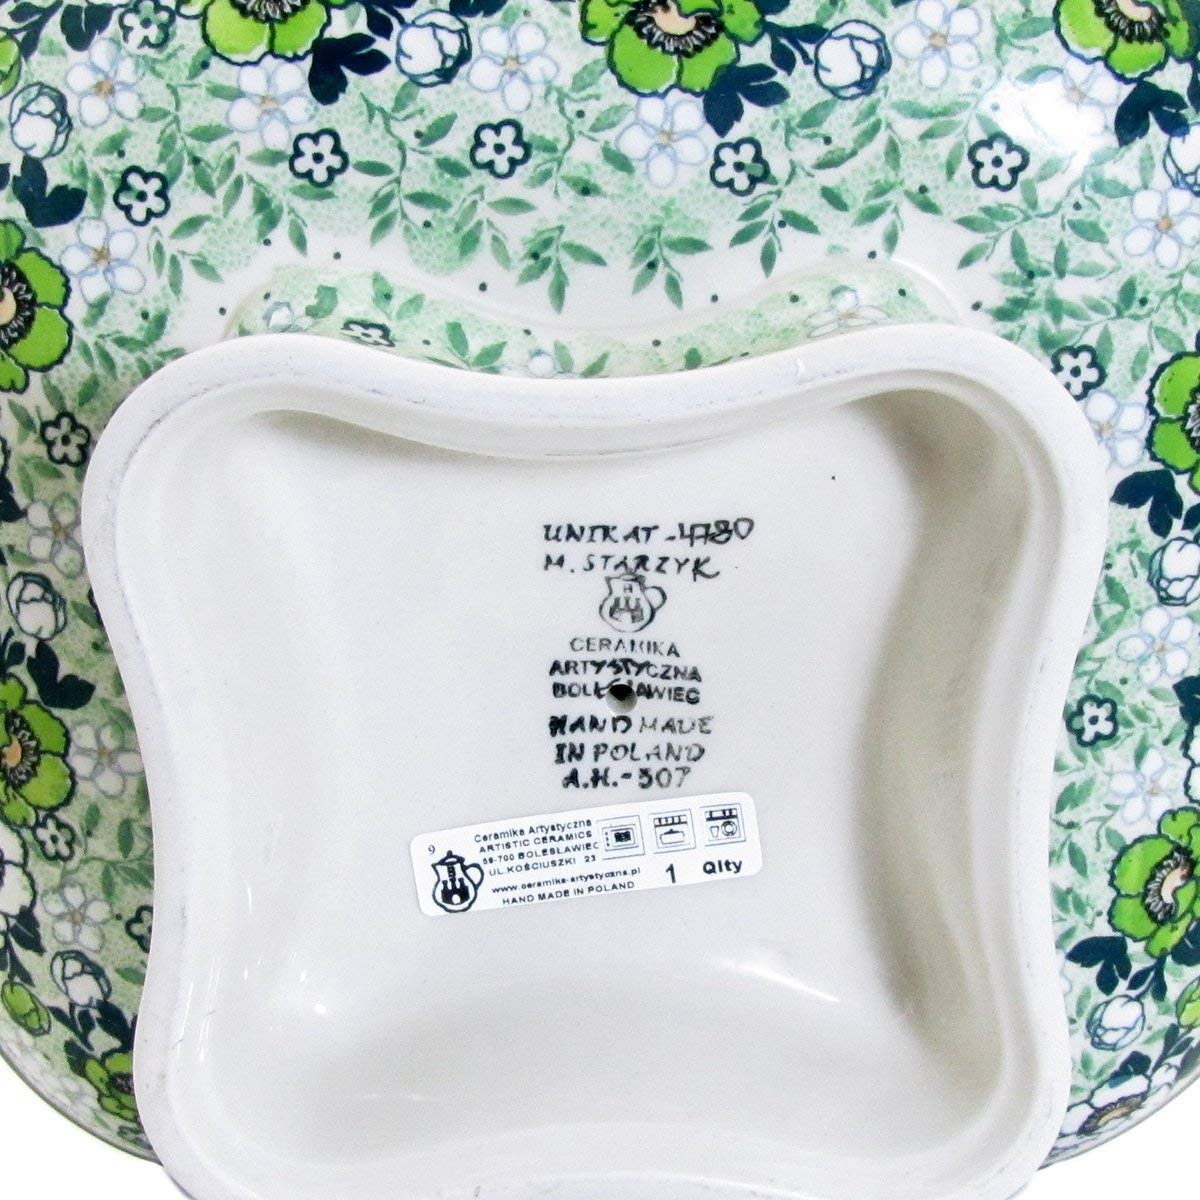 Polish Pottery Unikat 10'' SQUARE PEDESTAL SERVING PLATTER - U4780 Maria Starzyk by Great2bHome Polish Pottery and Unique Gifts (Image #3)